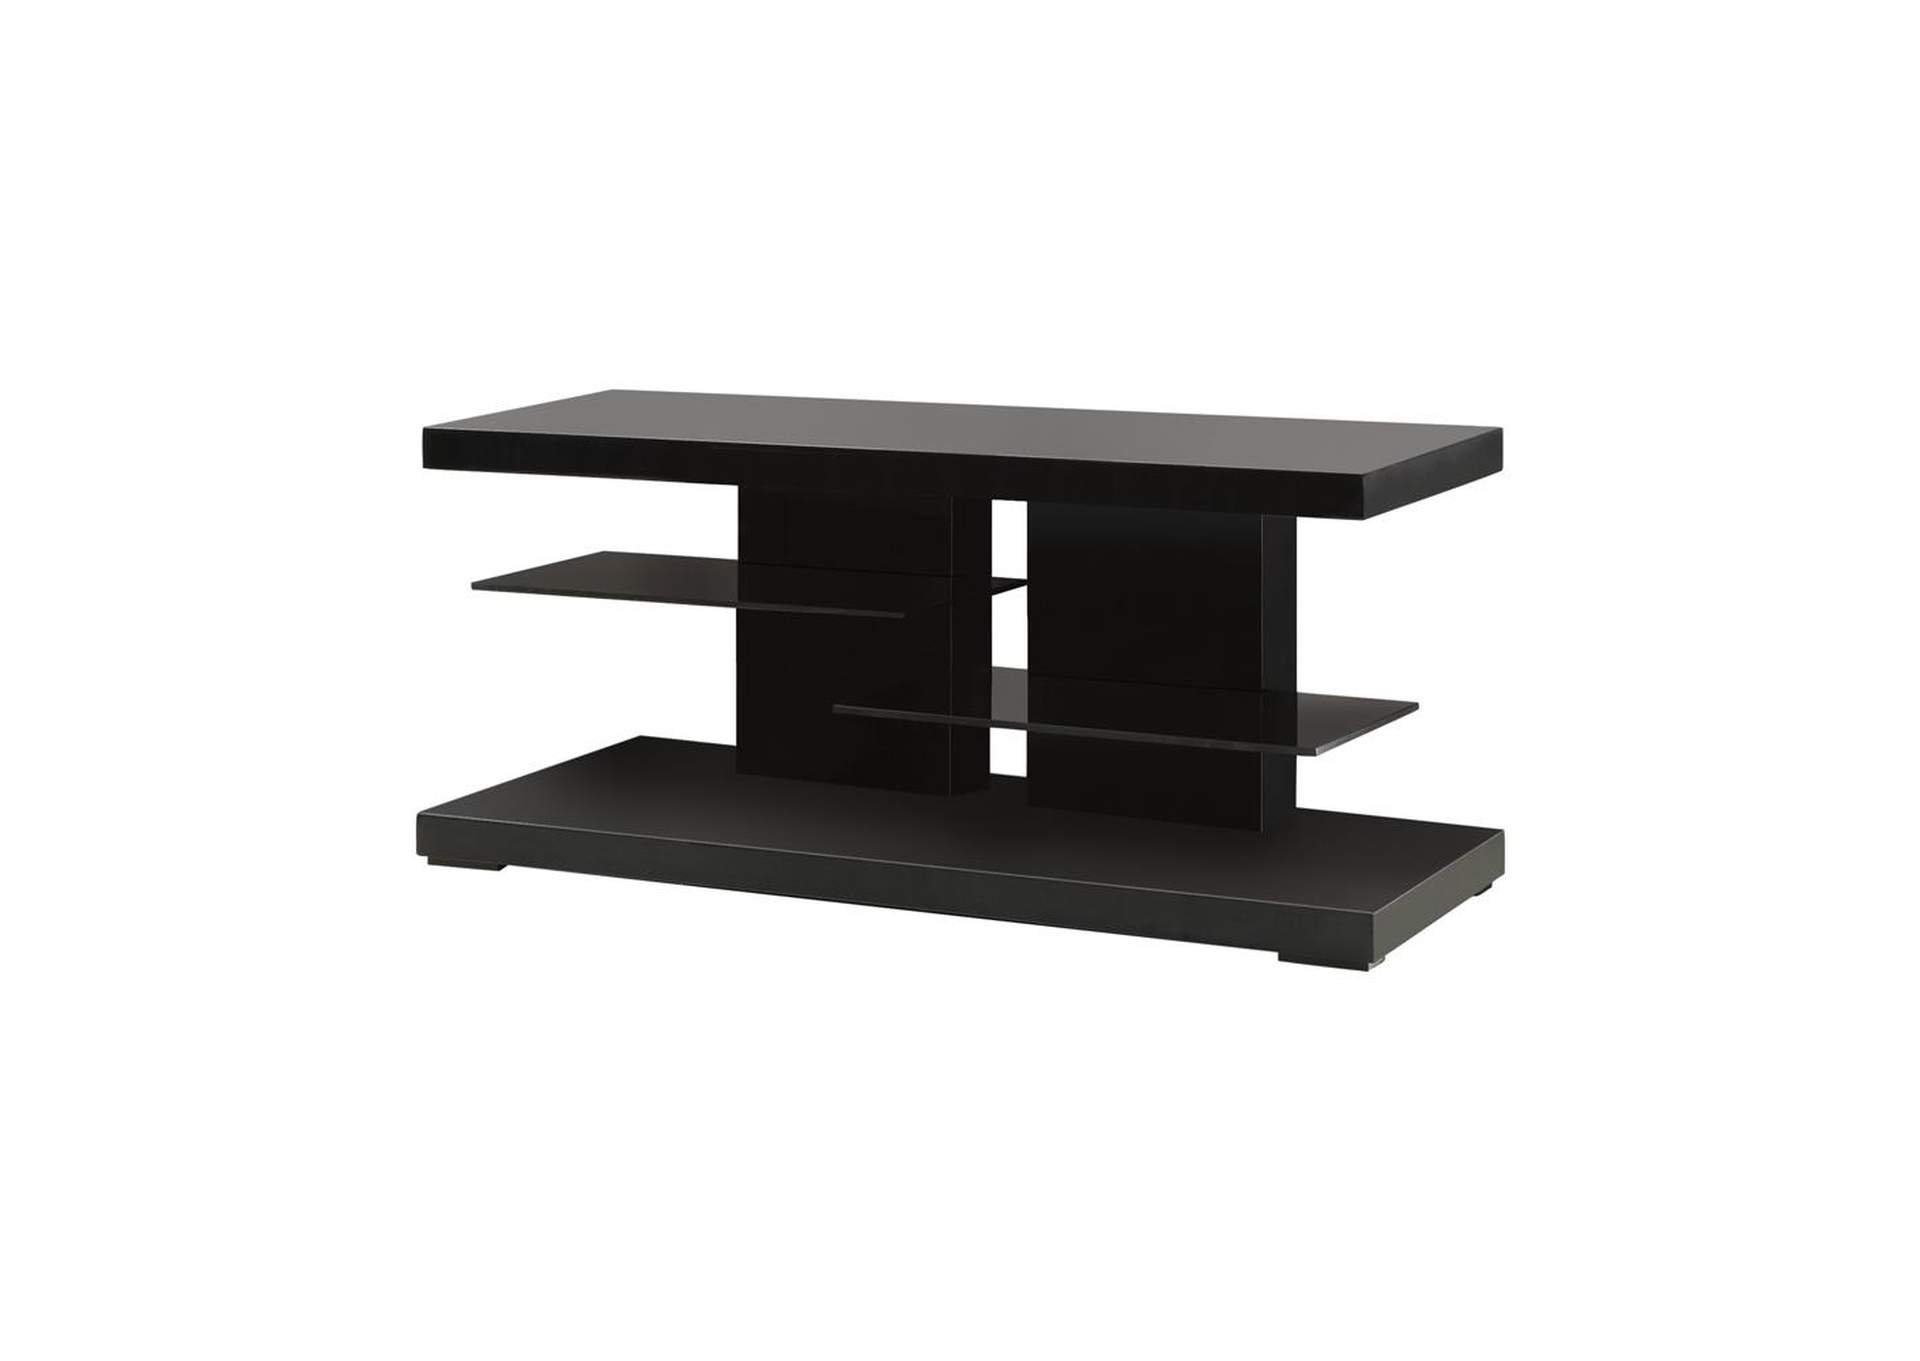 Cod Gray Contemporary Glossy Black TV Console,Coaster Furniture